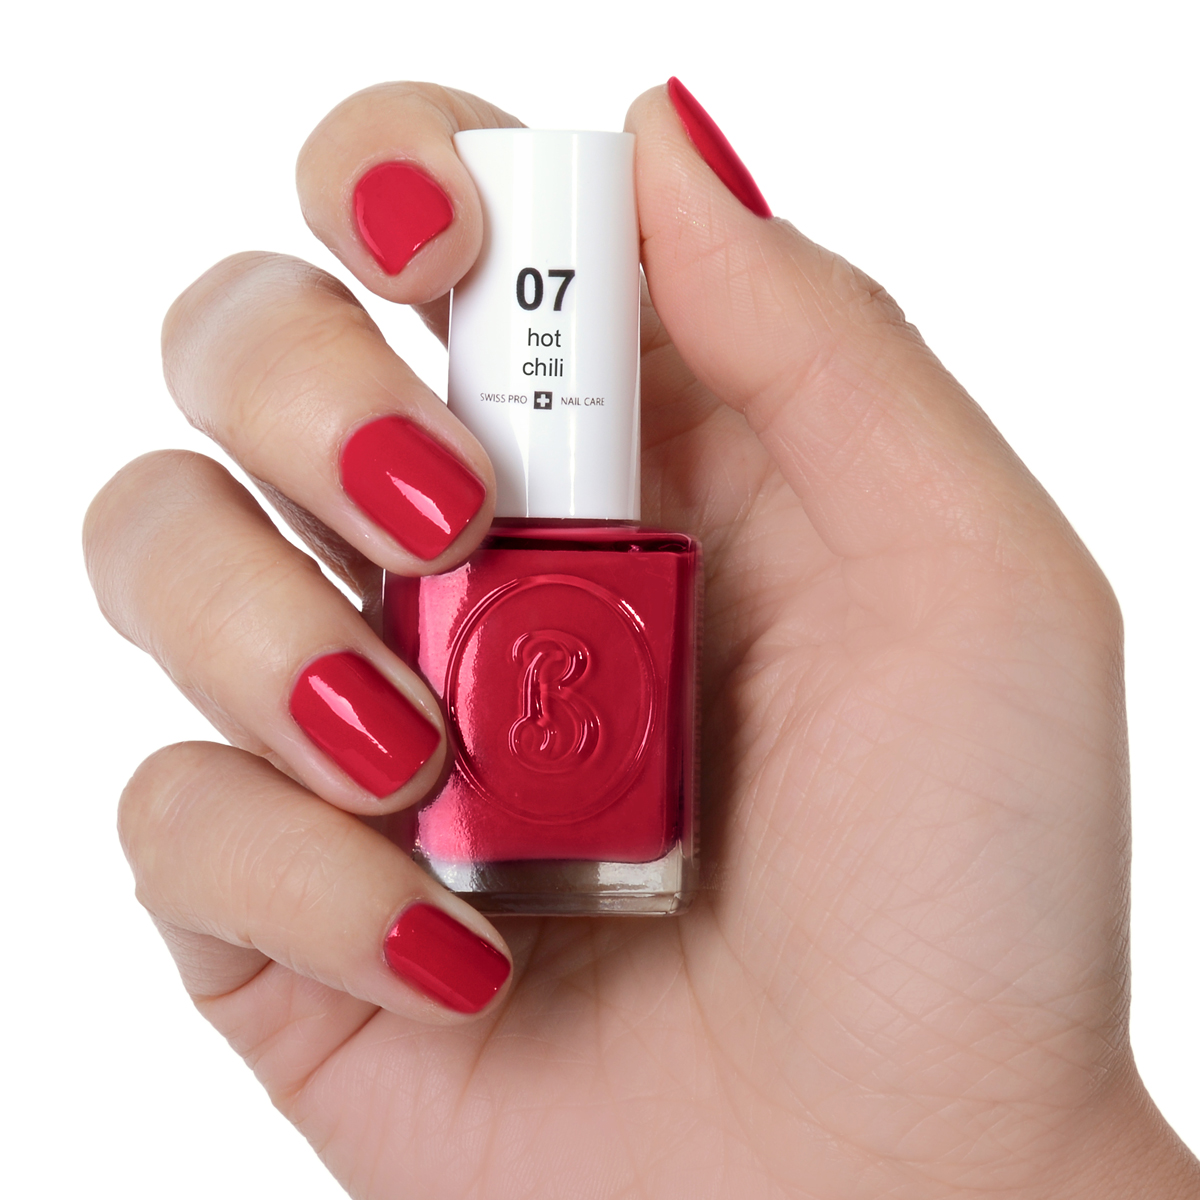 Berenice Oxygen Nail Polish / 07 hot chili